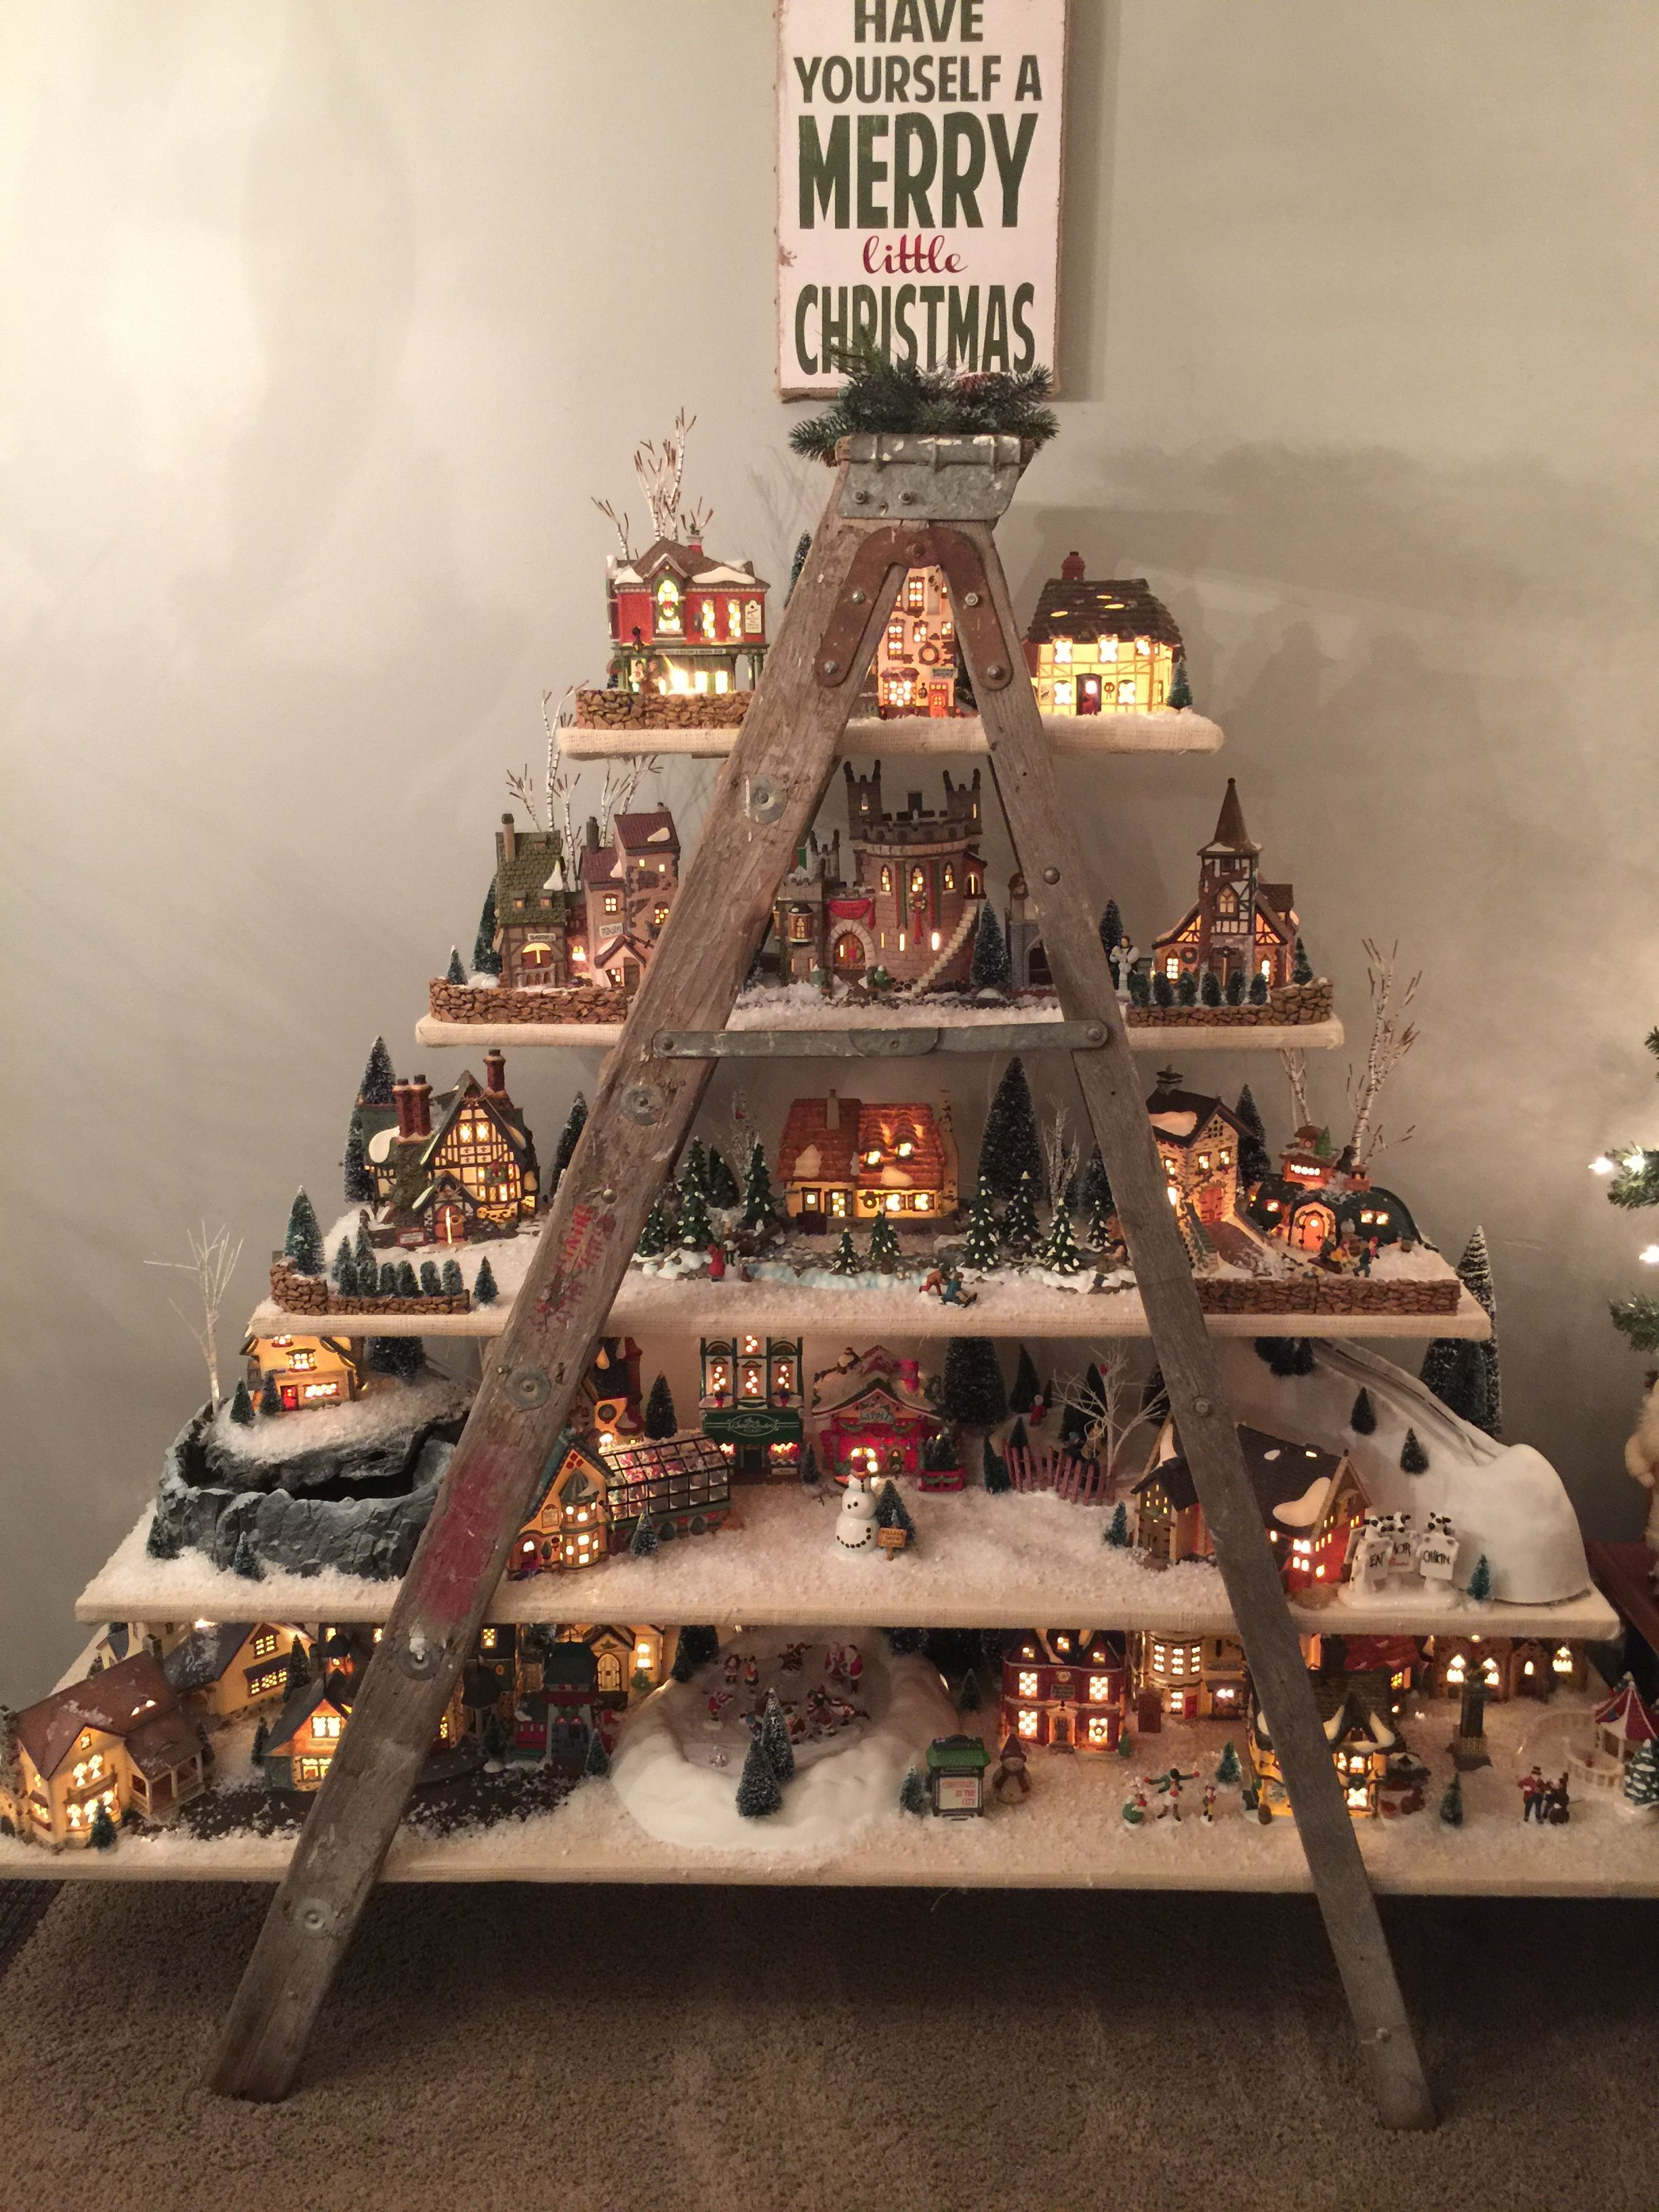 Christmas Village Display.Dept 56 Christmas Village Ladder Display Christmas Ideas